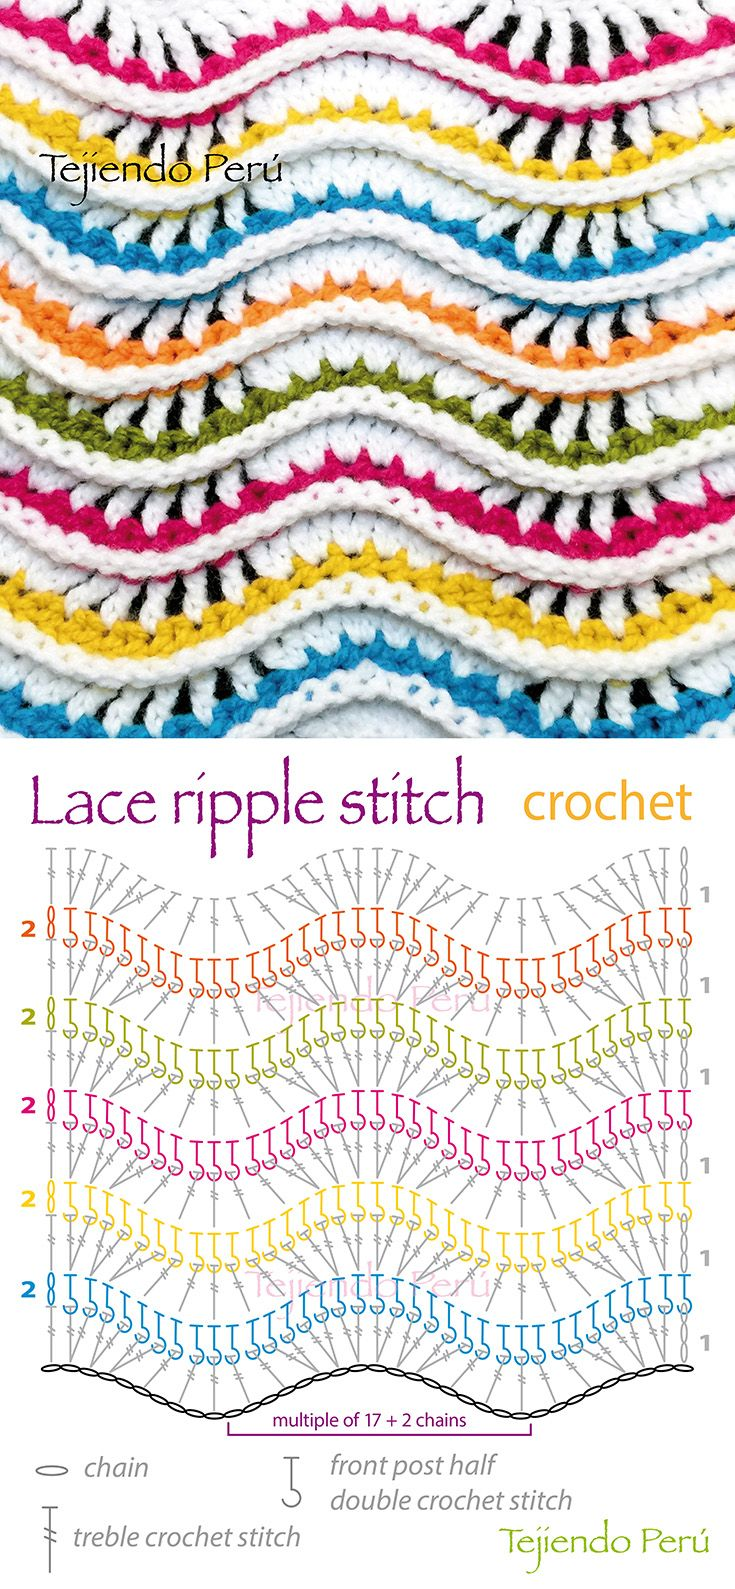 Crochet lace ripple stitch diagram pattern or chart a lot of crochet lace ripple stitch diagram pattern or chart a lot of crochet ccuart